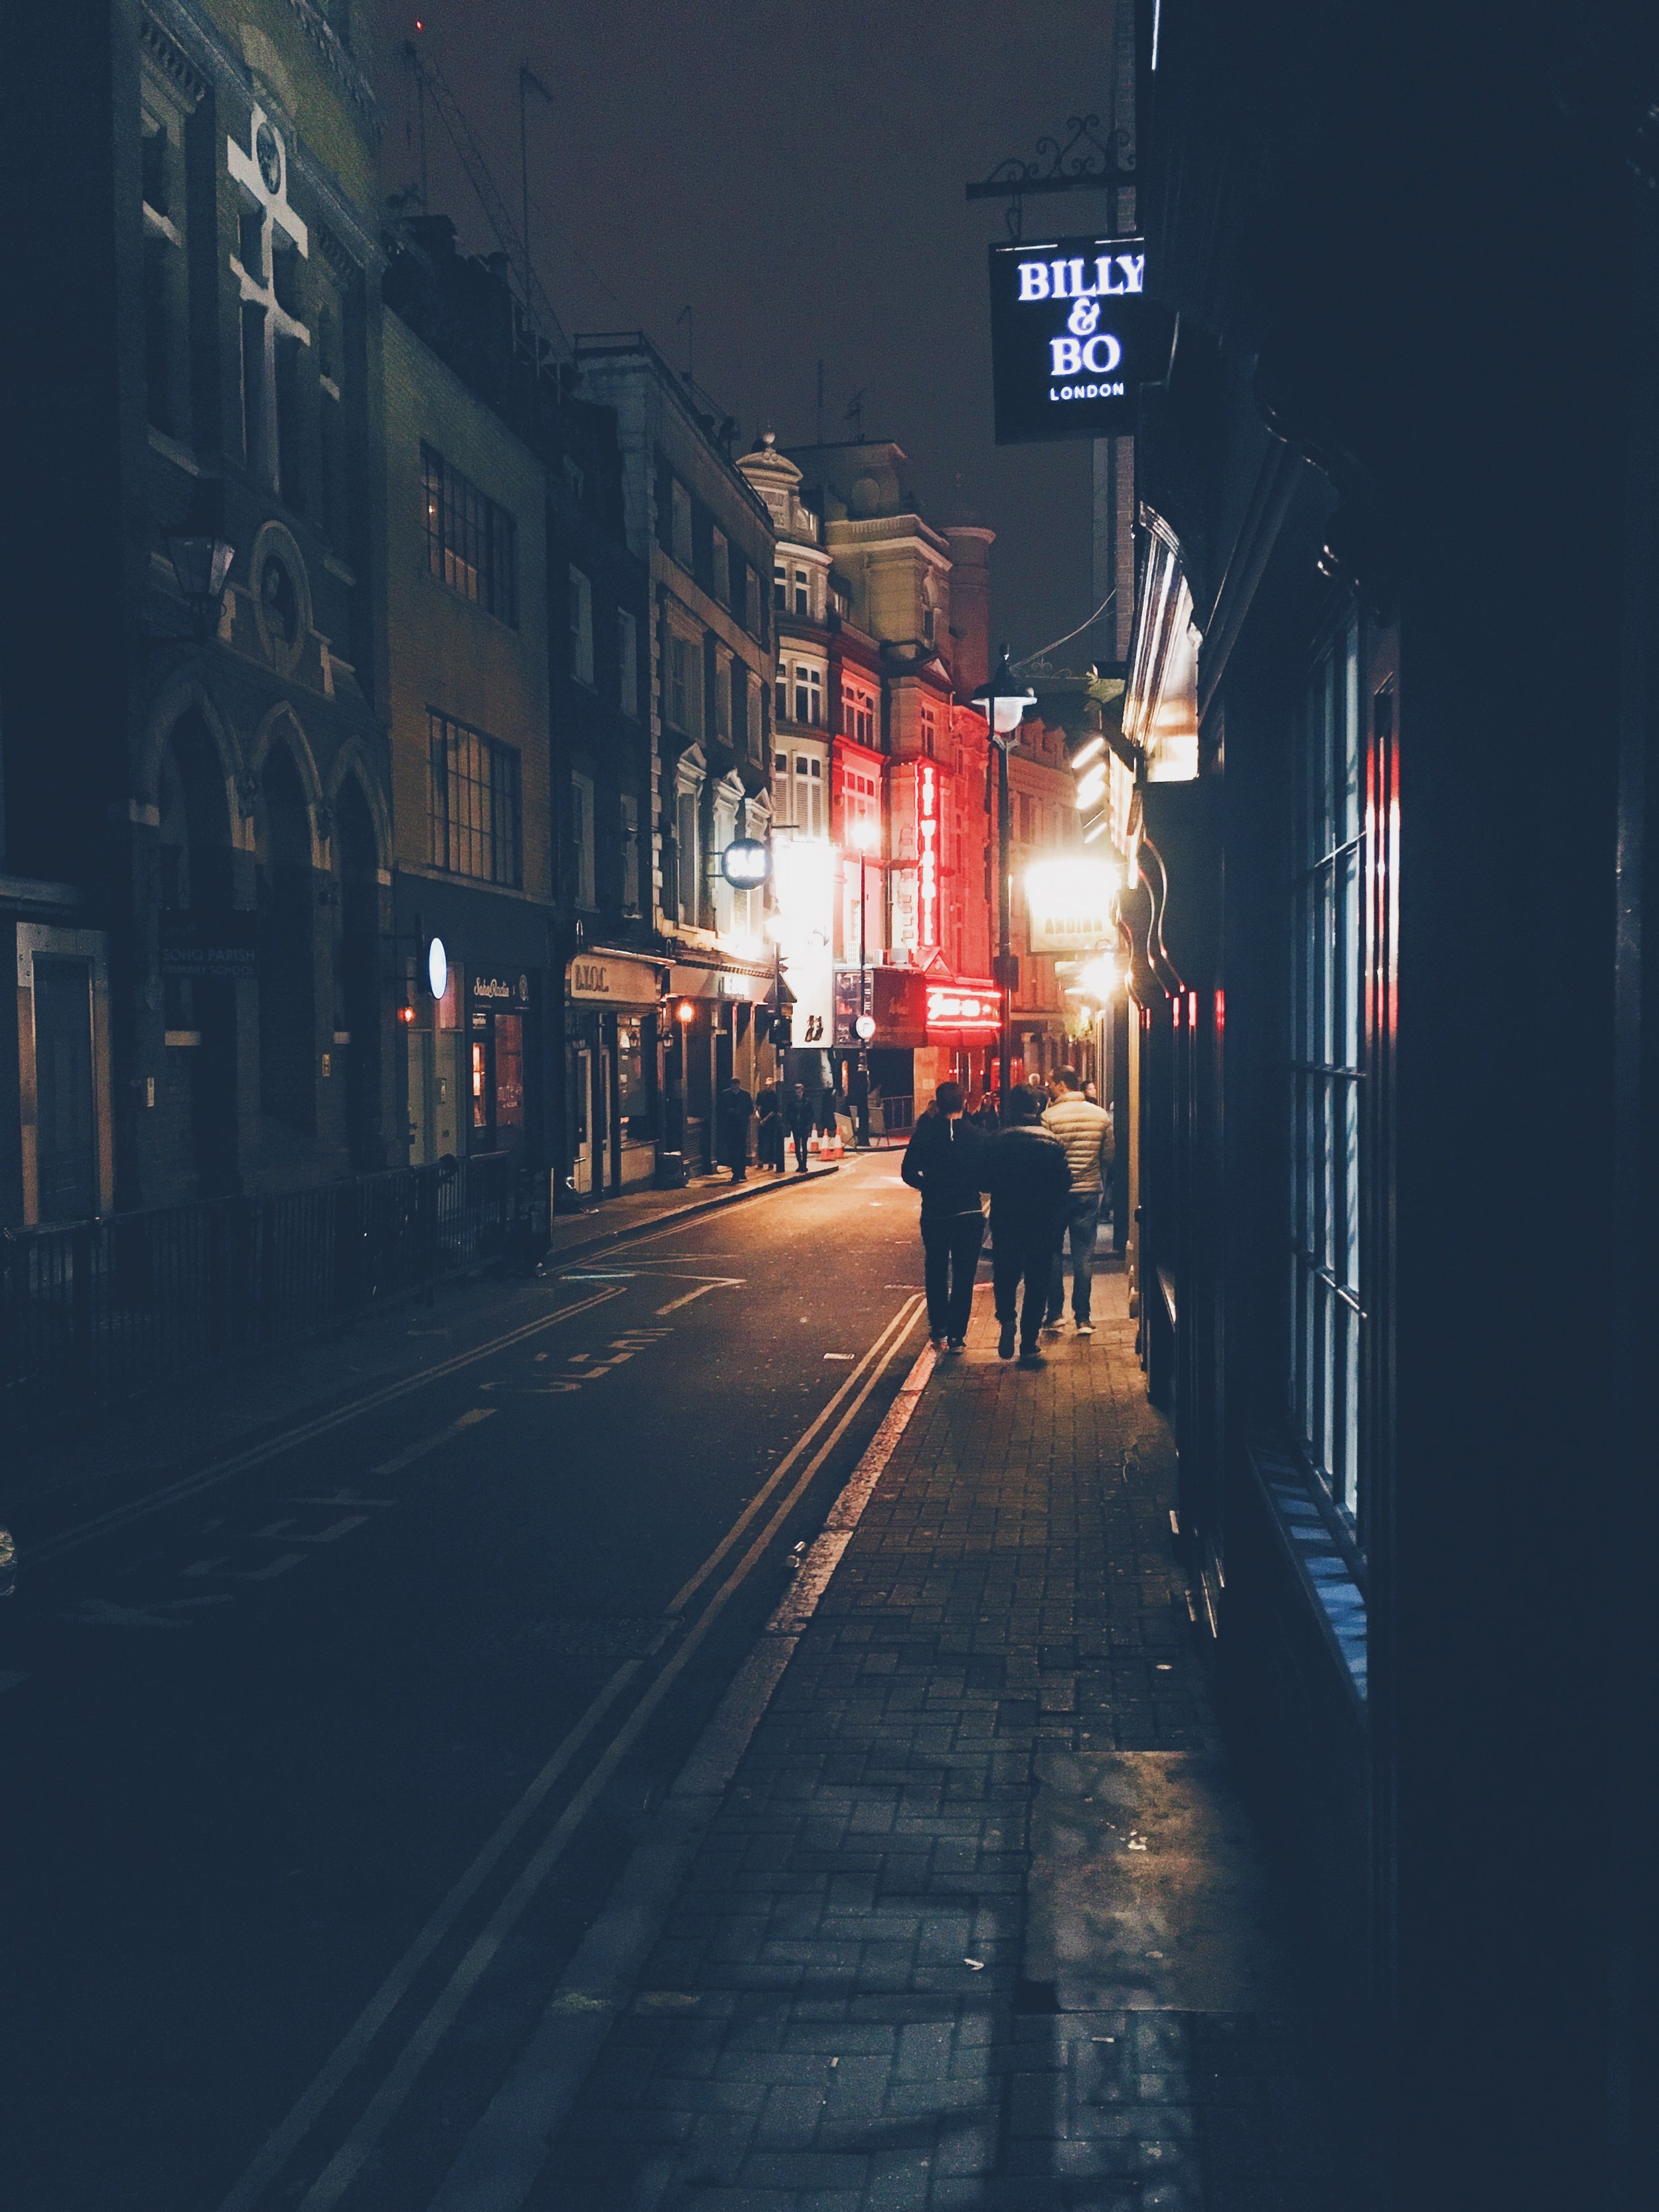 I just love exploring London by night